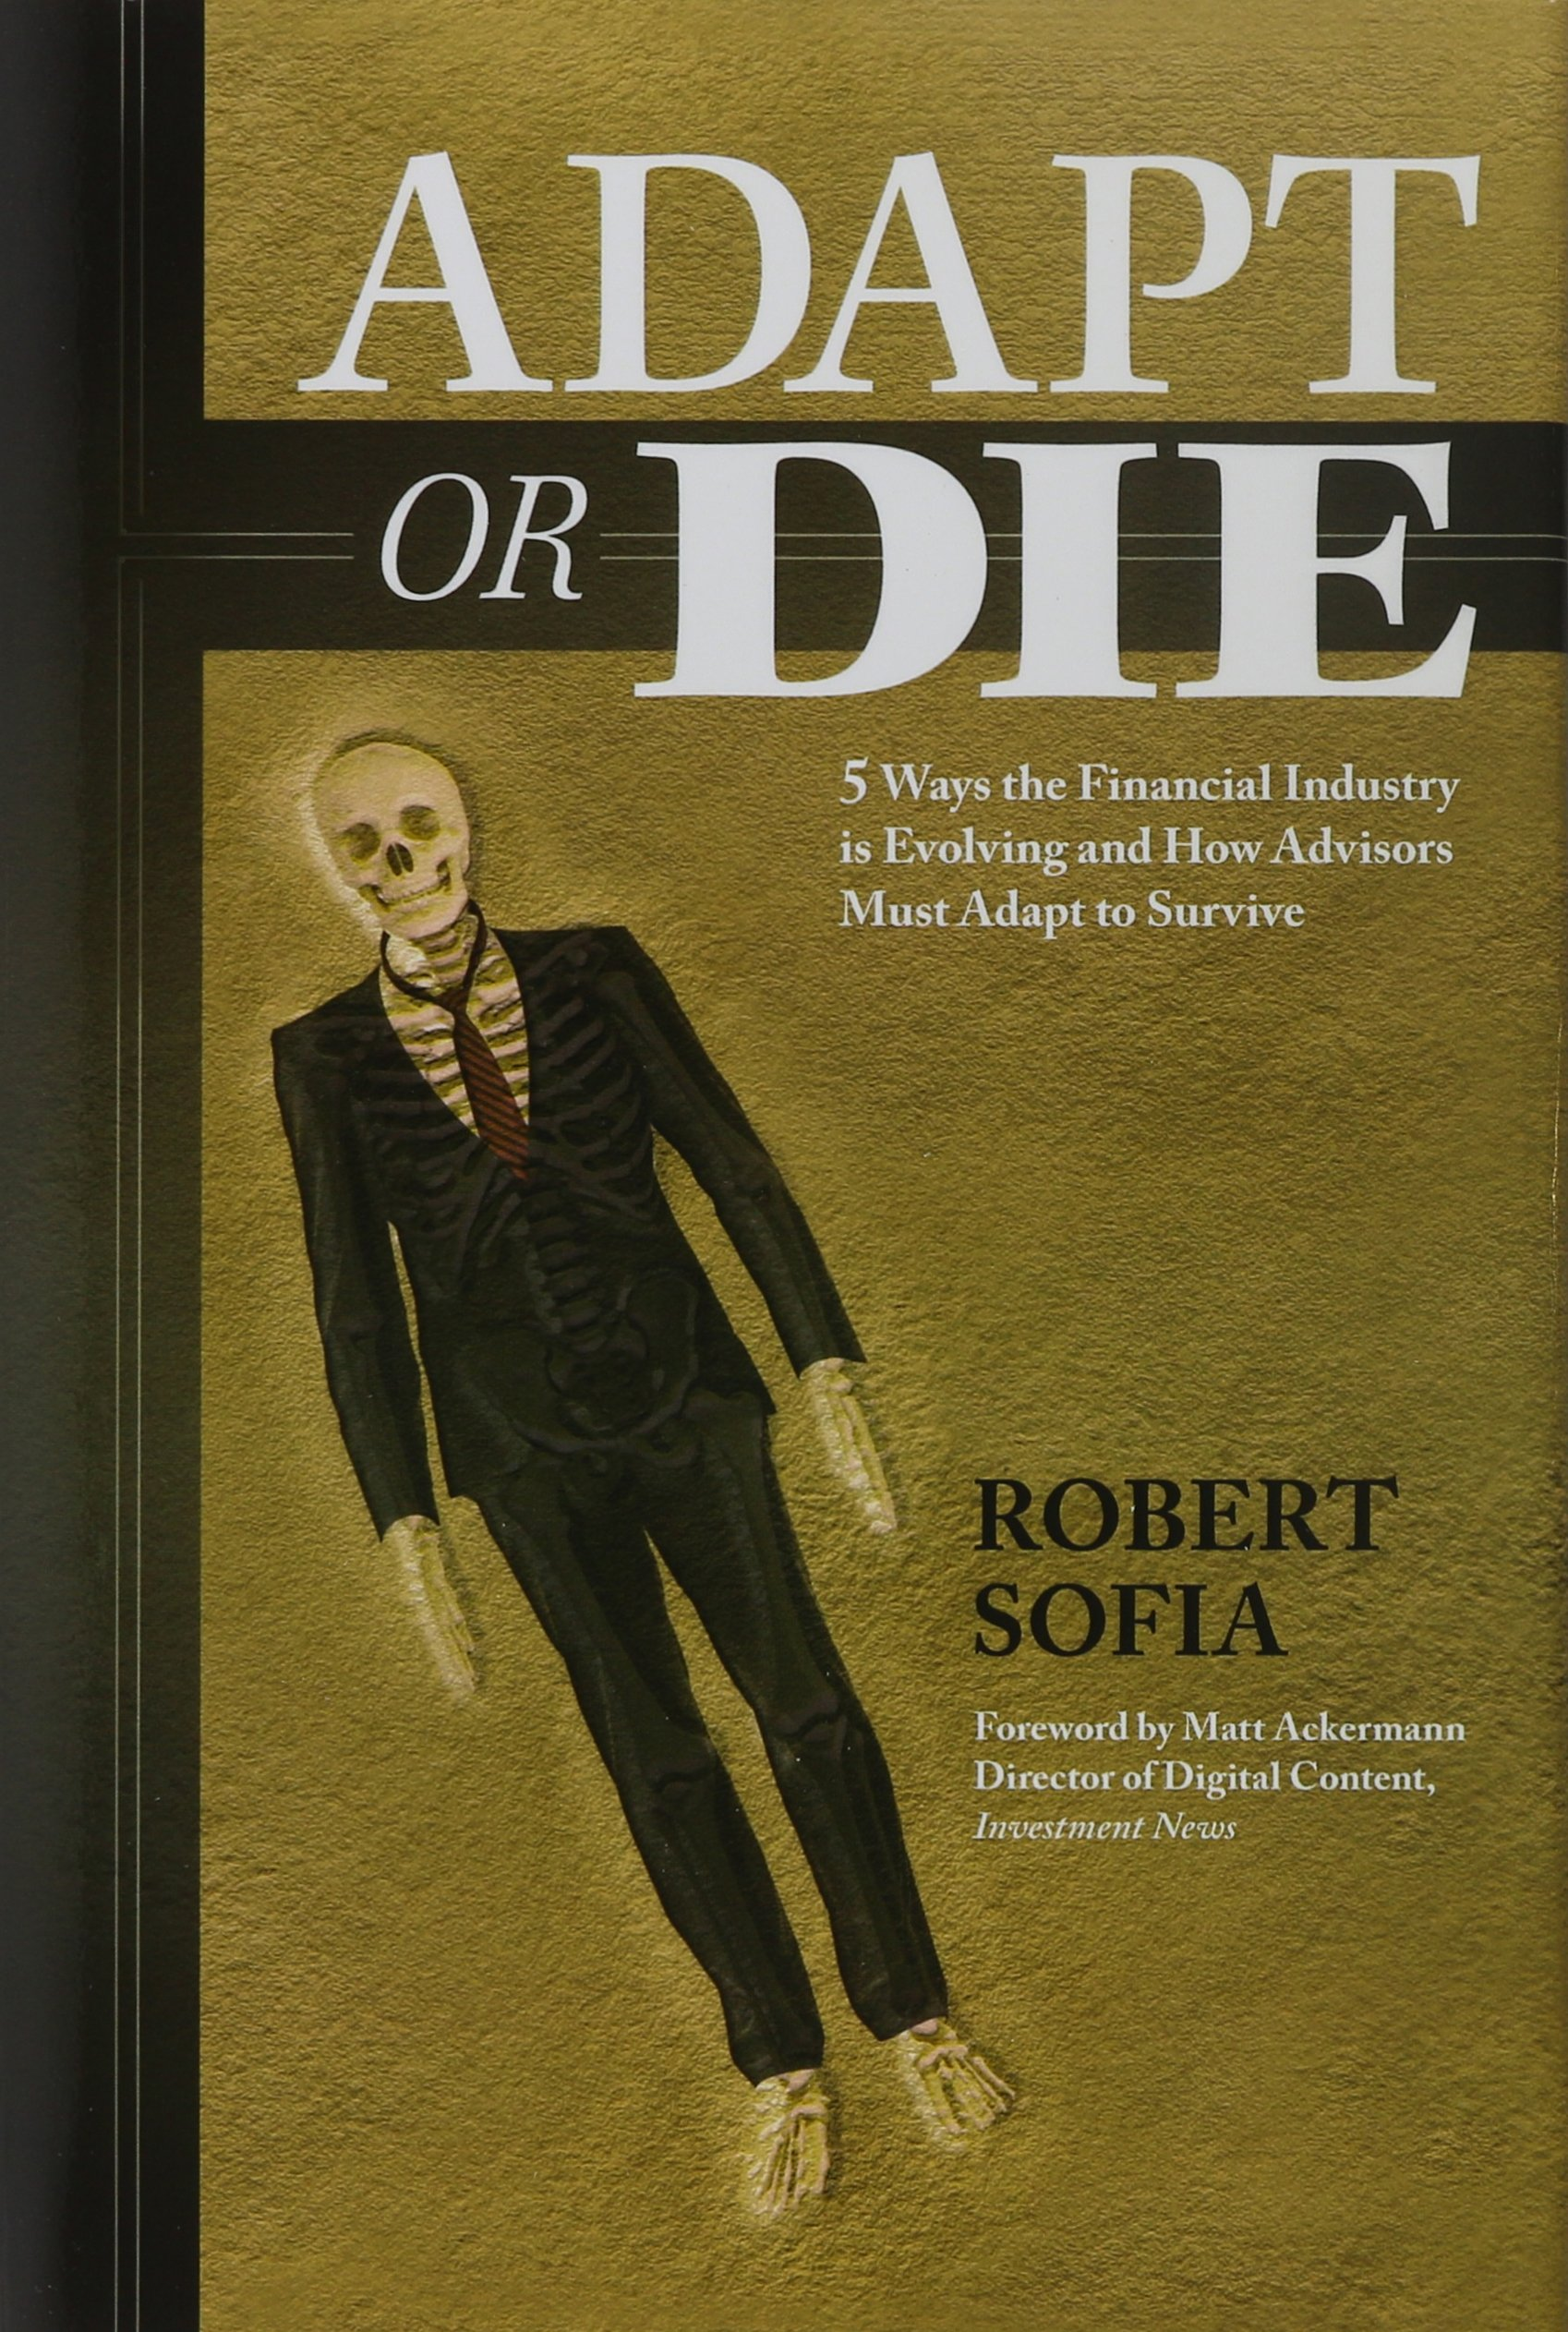 Adapt or Die: 5 Ways the Financial Industry Is Evolving and How Advisors Must Adapt to Survive pdf epub